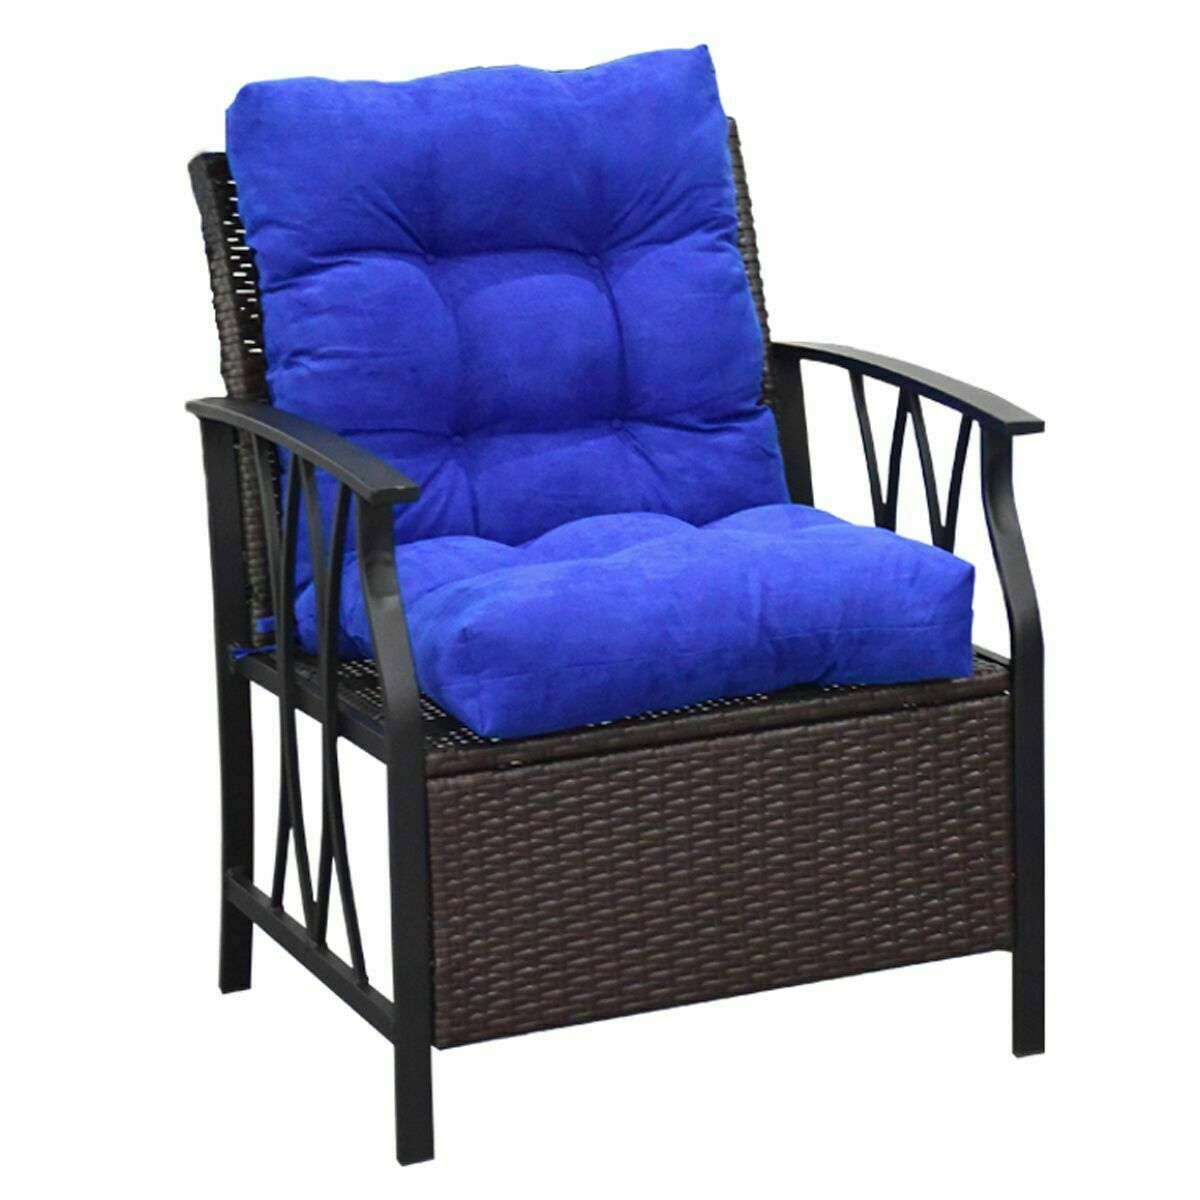 Costway 42'' Seat/Back Chair Cushion Tufted Pillow Indoor Outdoor Swing Glider Seat Blue